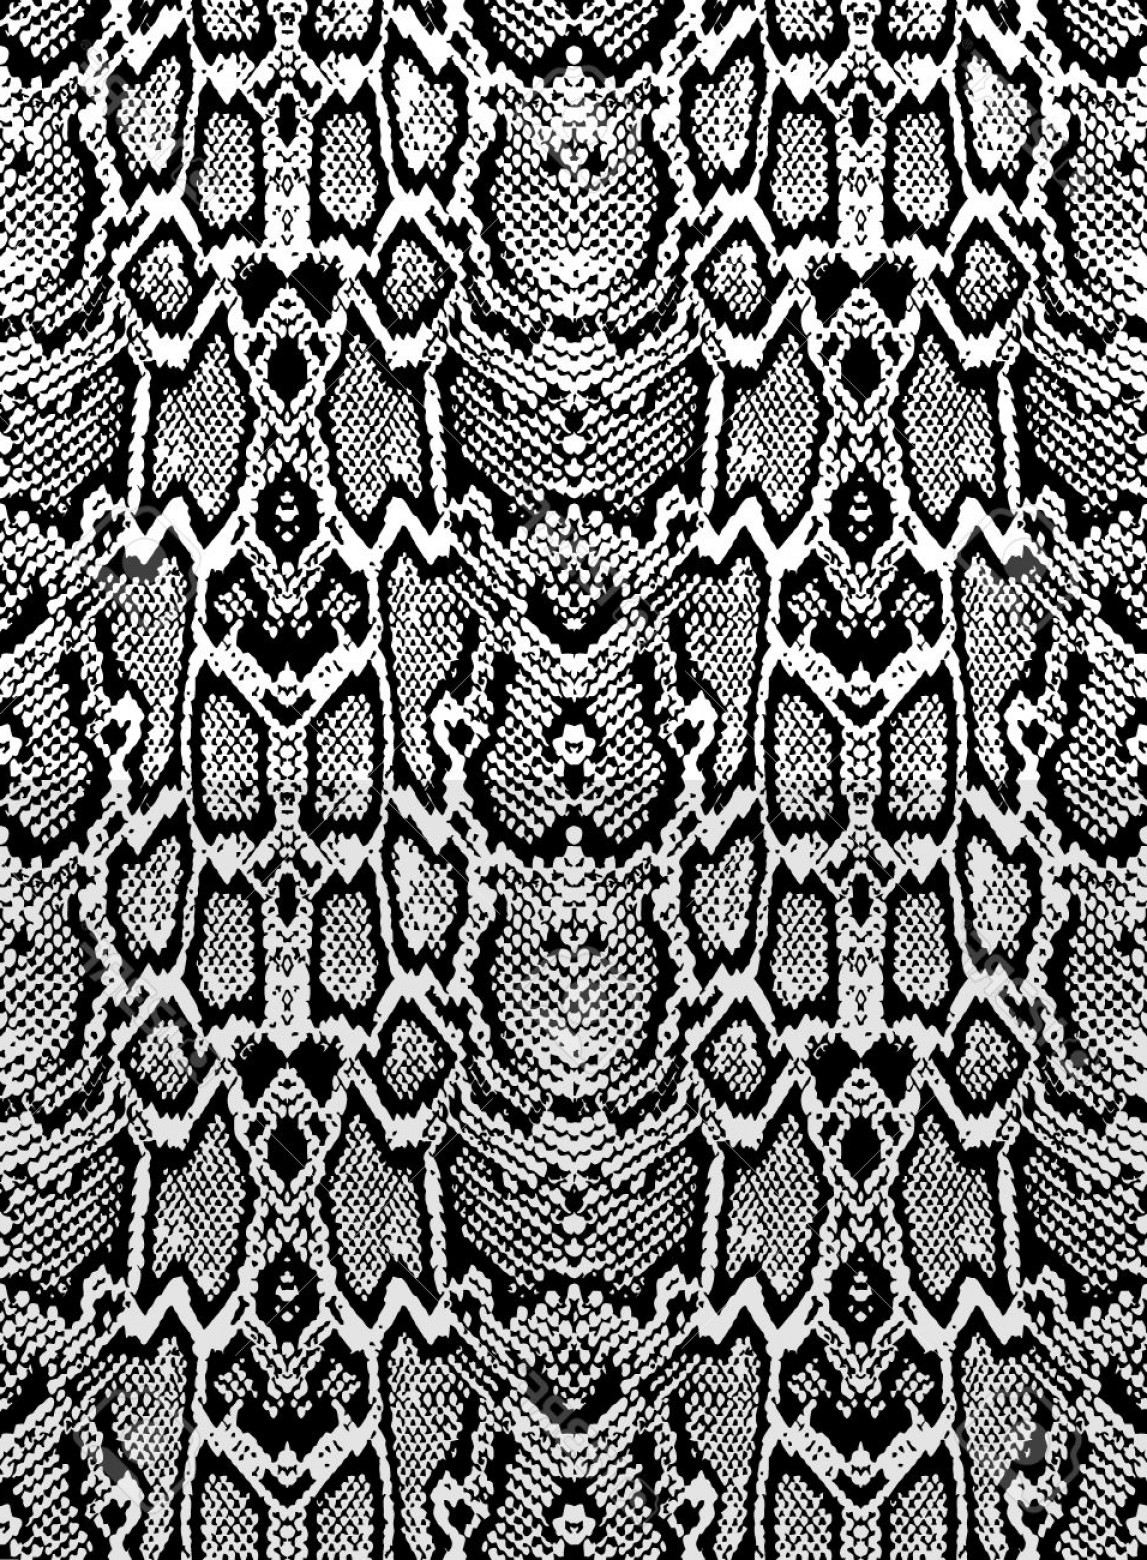 Rattlesnake Skin Vector: Photostock Vector Snake Skin Texture Seamless Pattern Black On White Background